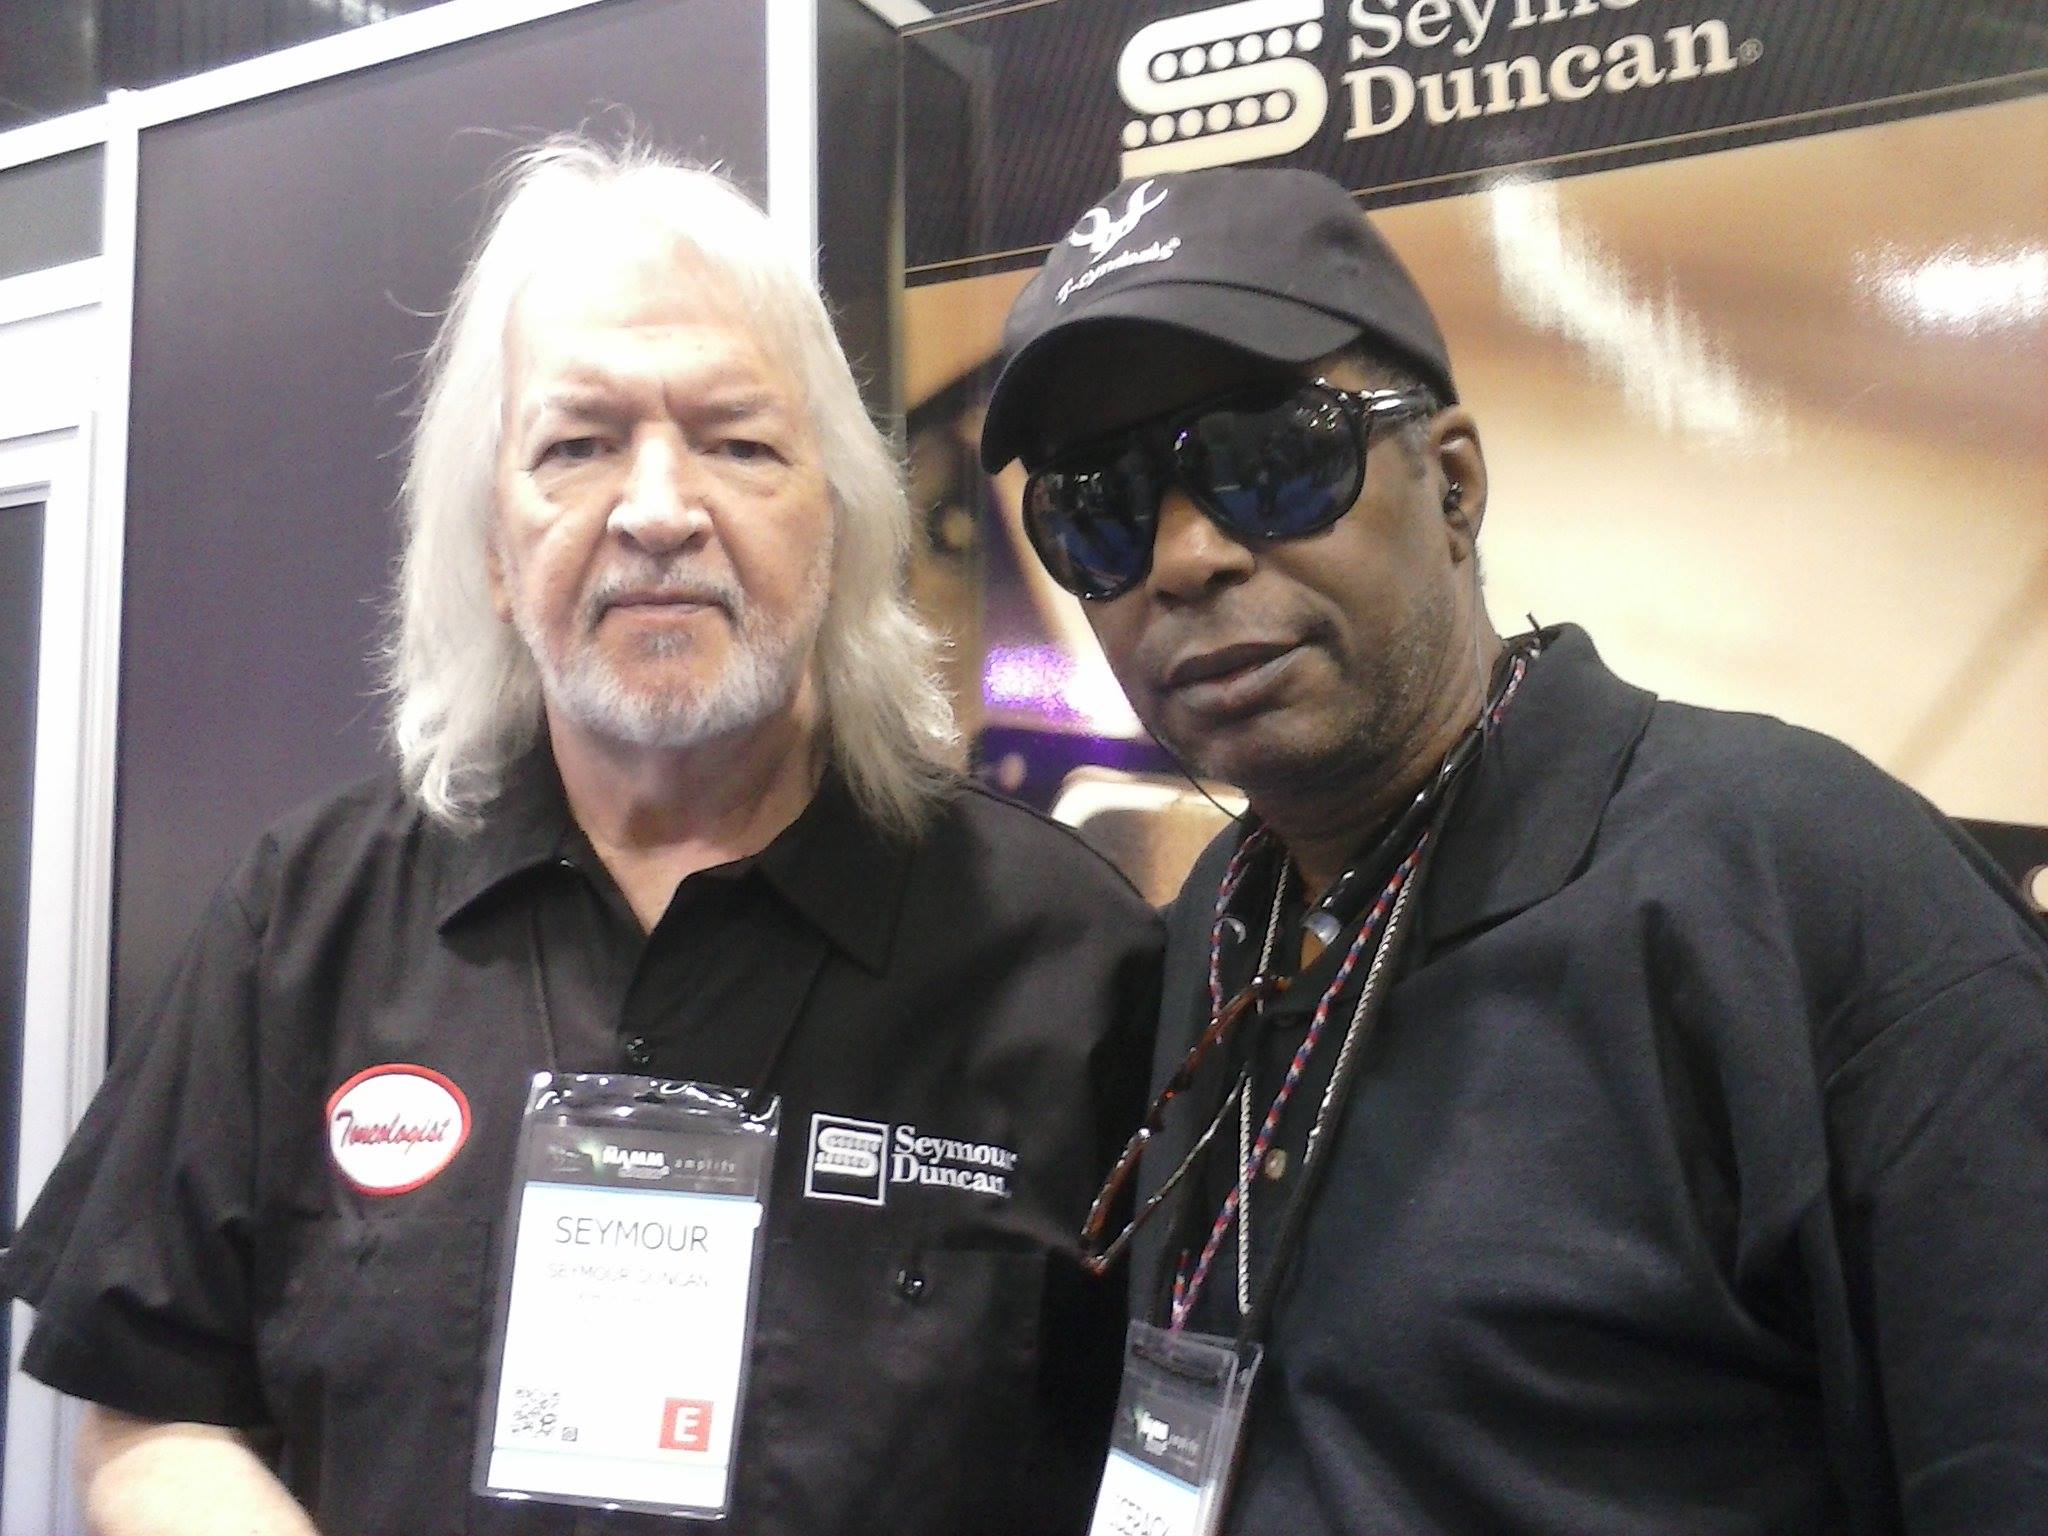 seymour duncan and icepack